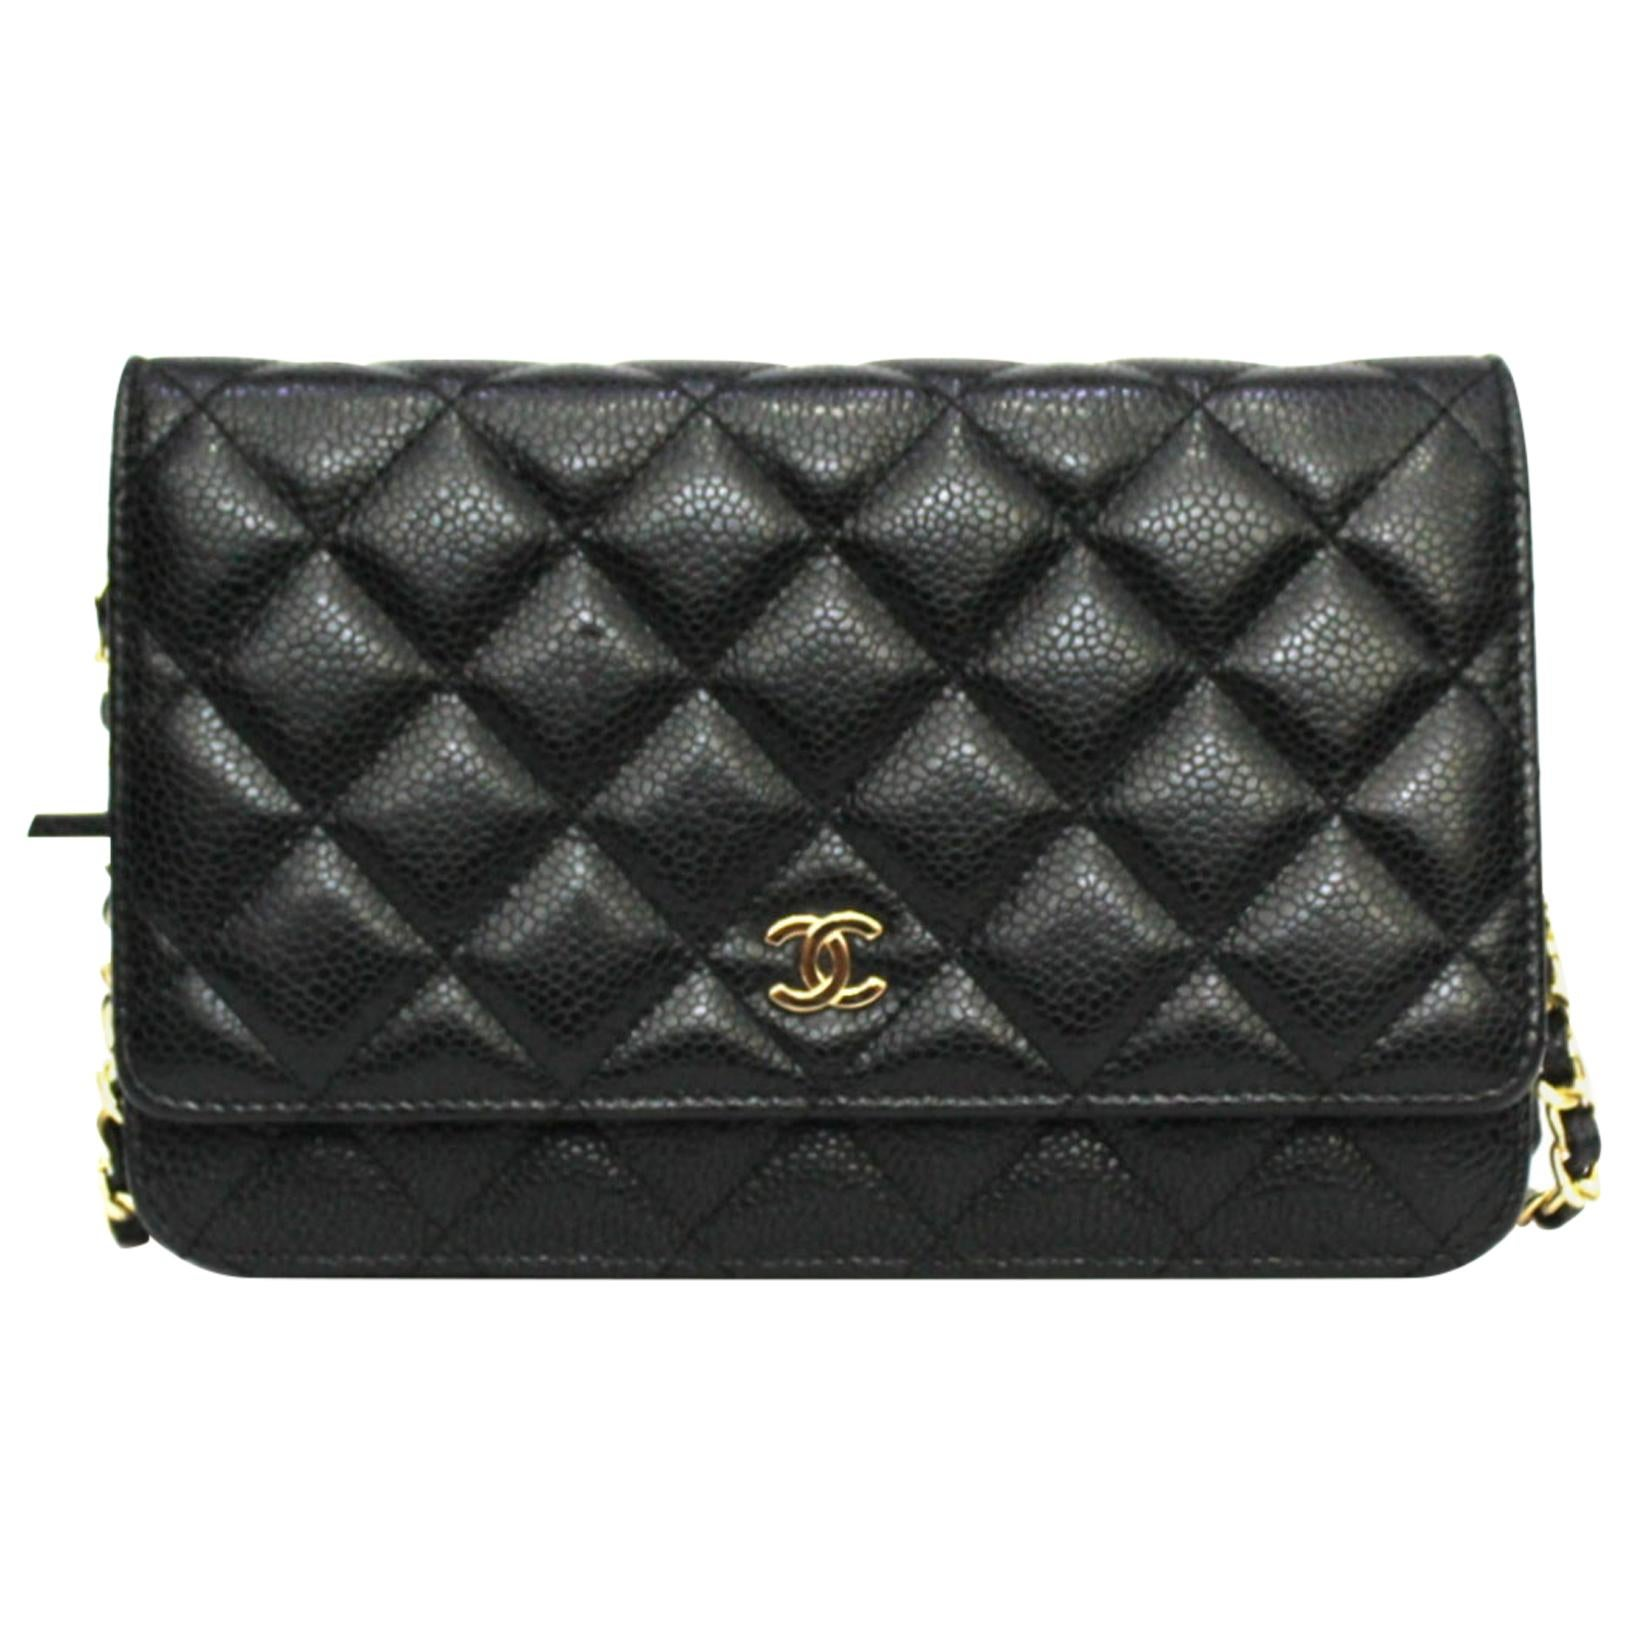 Chanel Black Learher Woc Bag